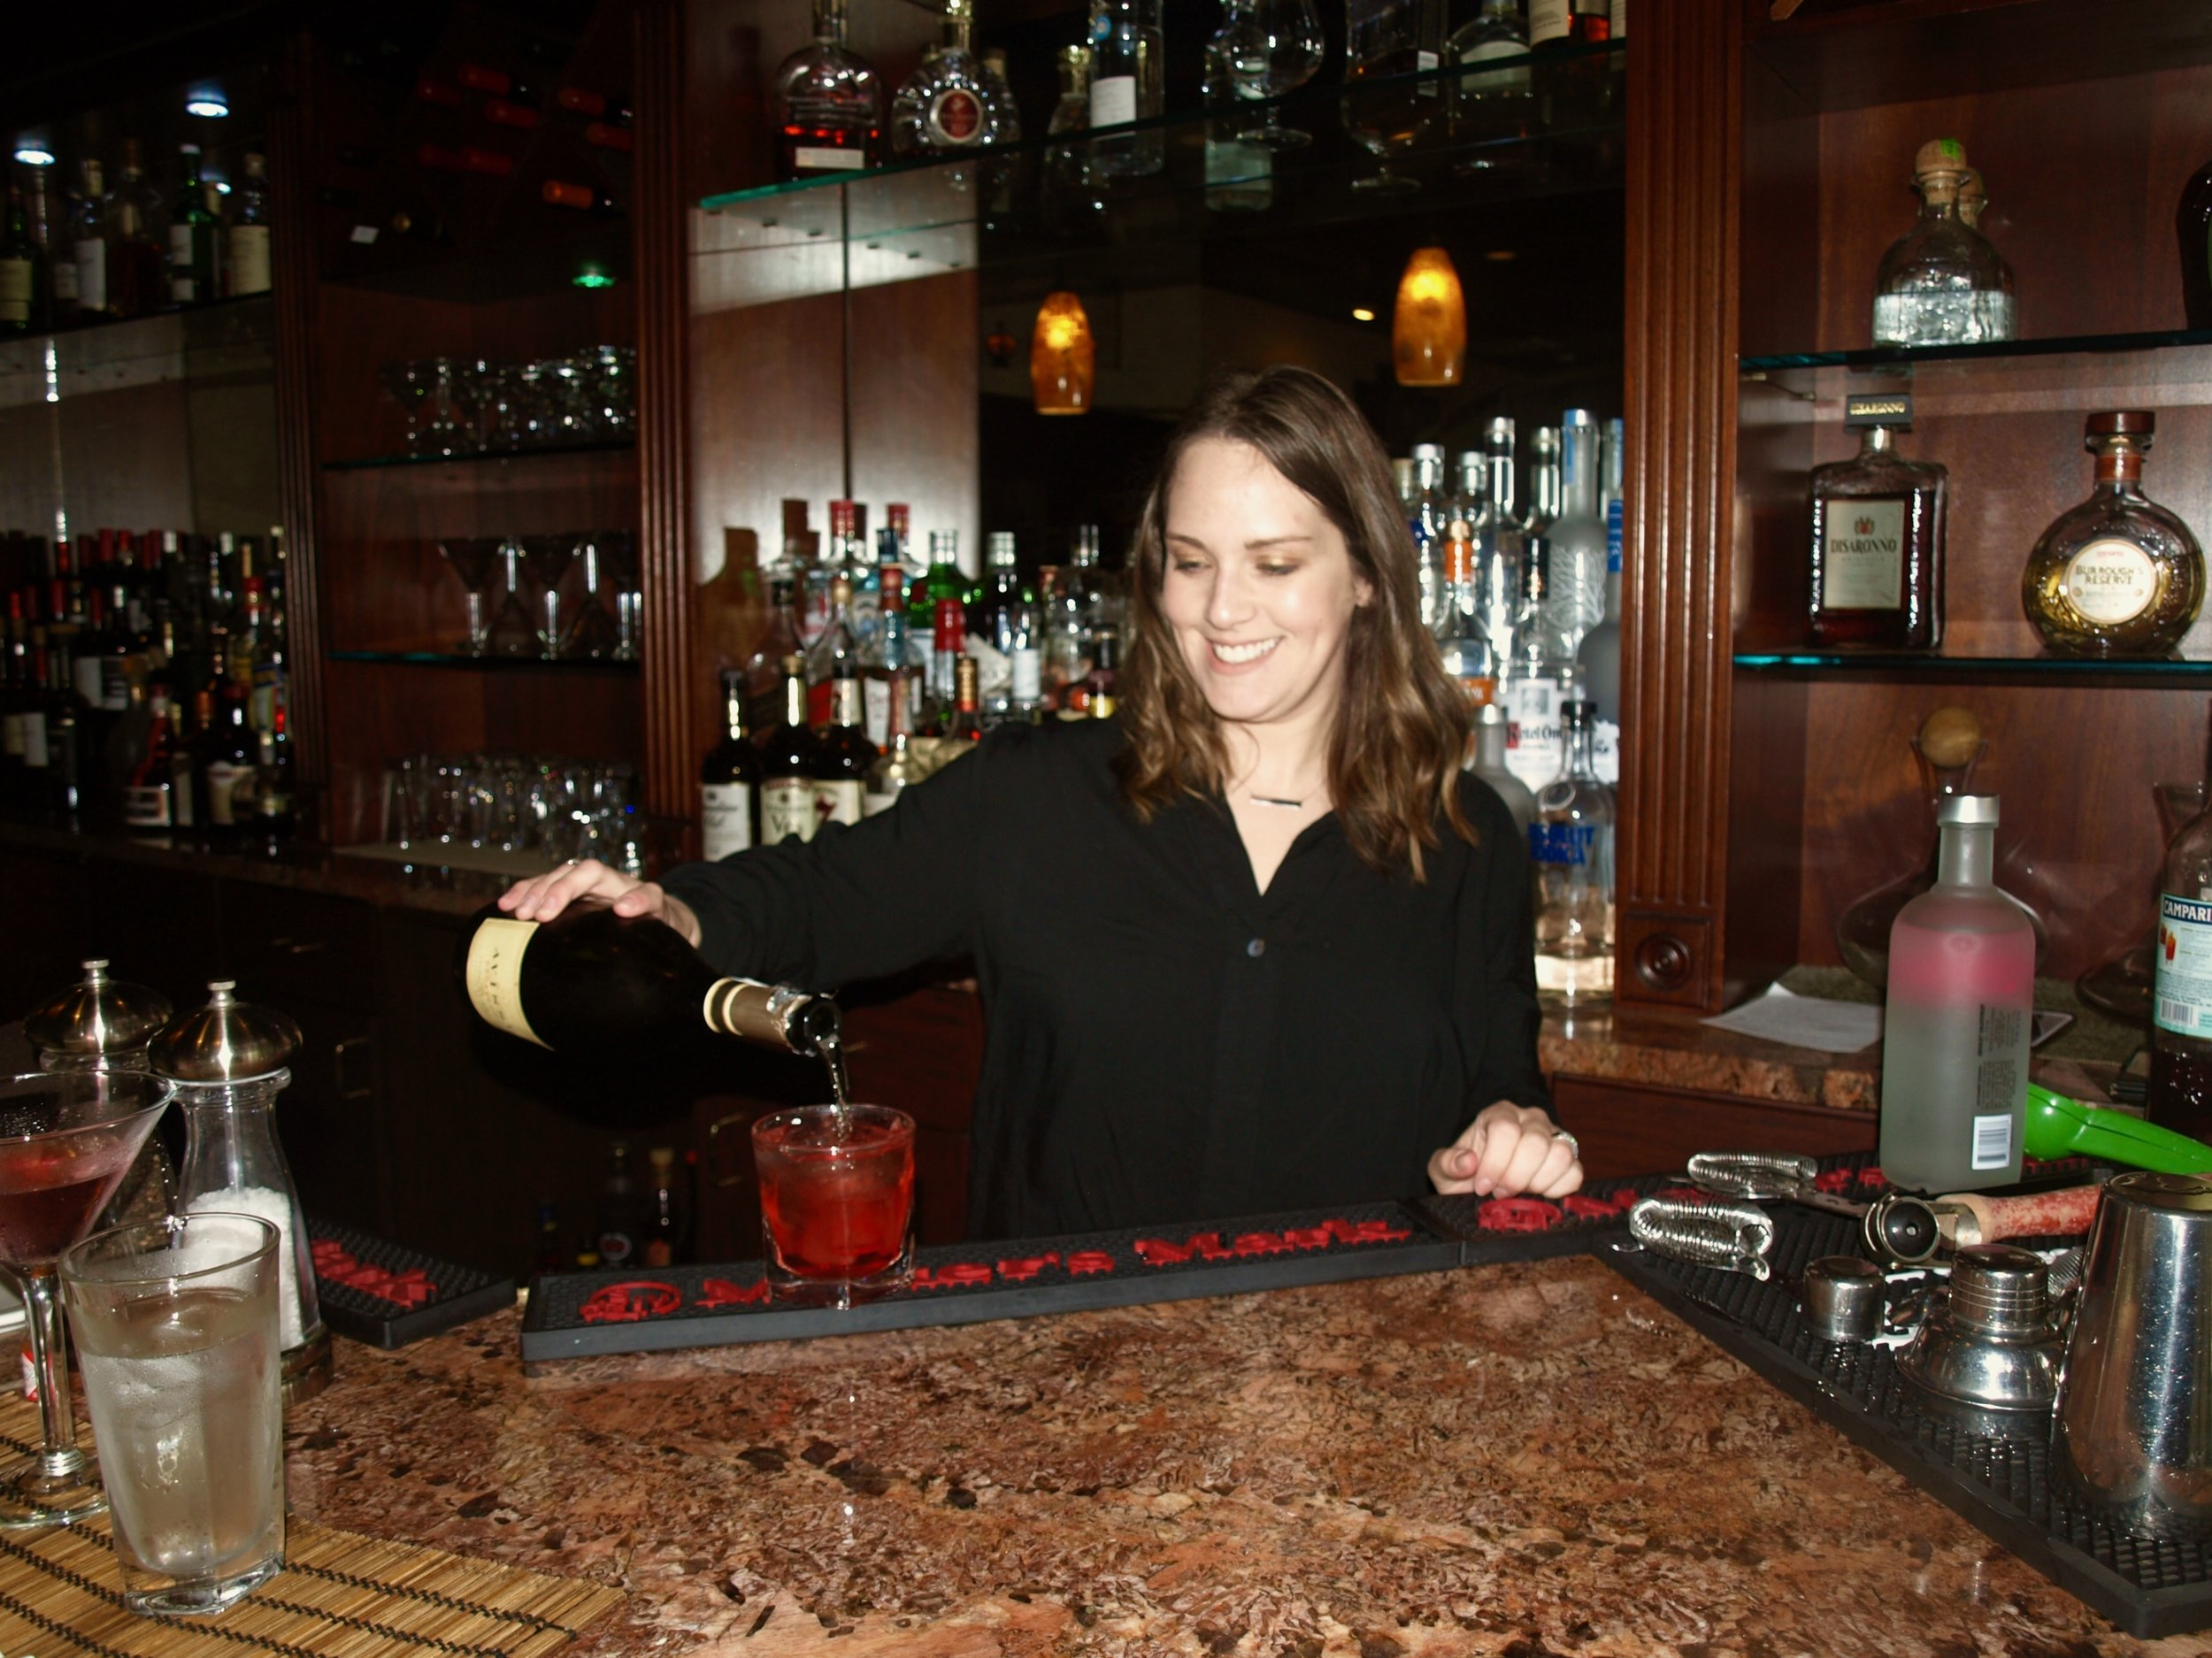 Bartender, Jessica Chaimowitz serves up a spring cocktail.